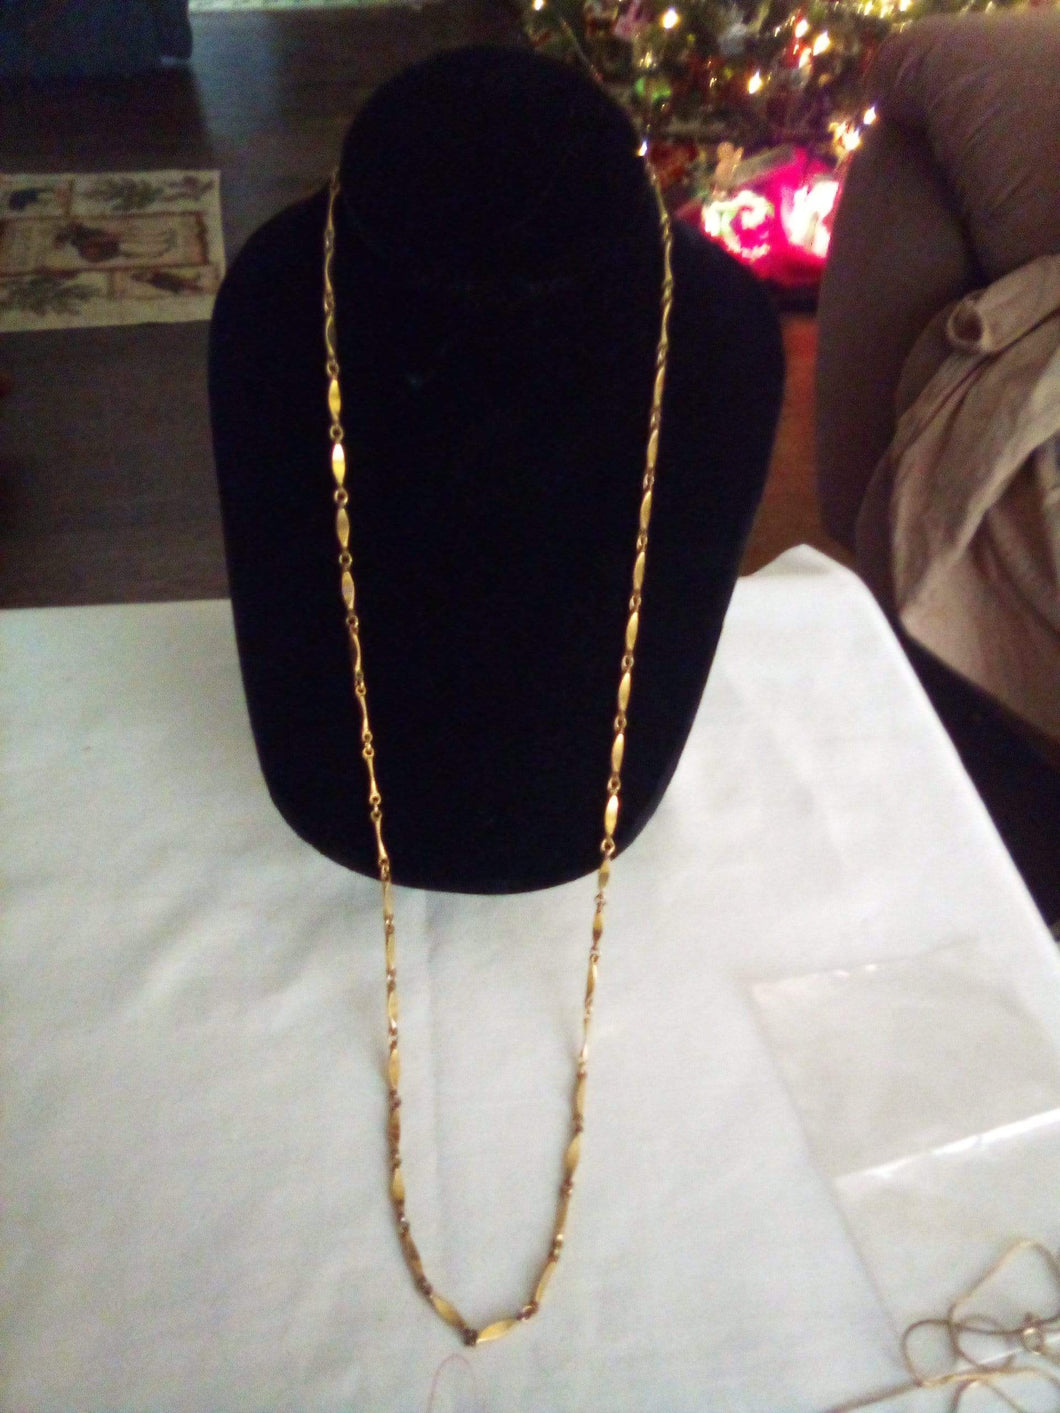 Long decorative chain necklace - B&P'sringsnthings